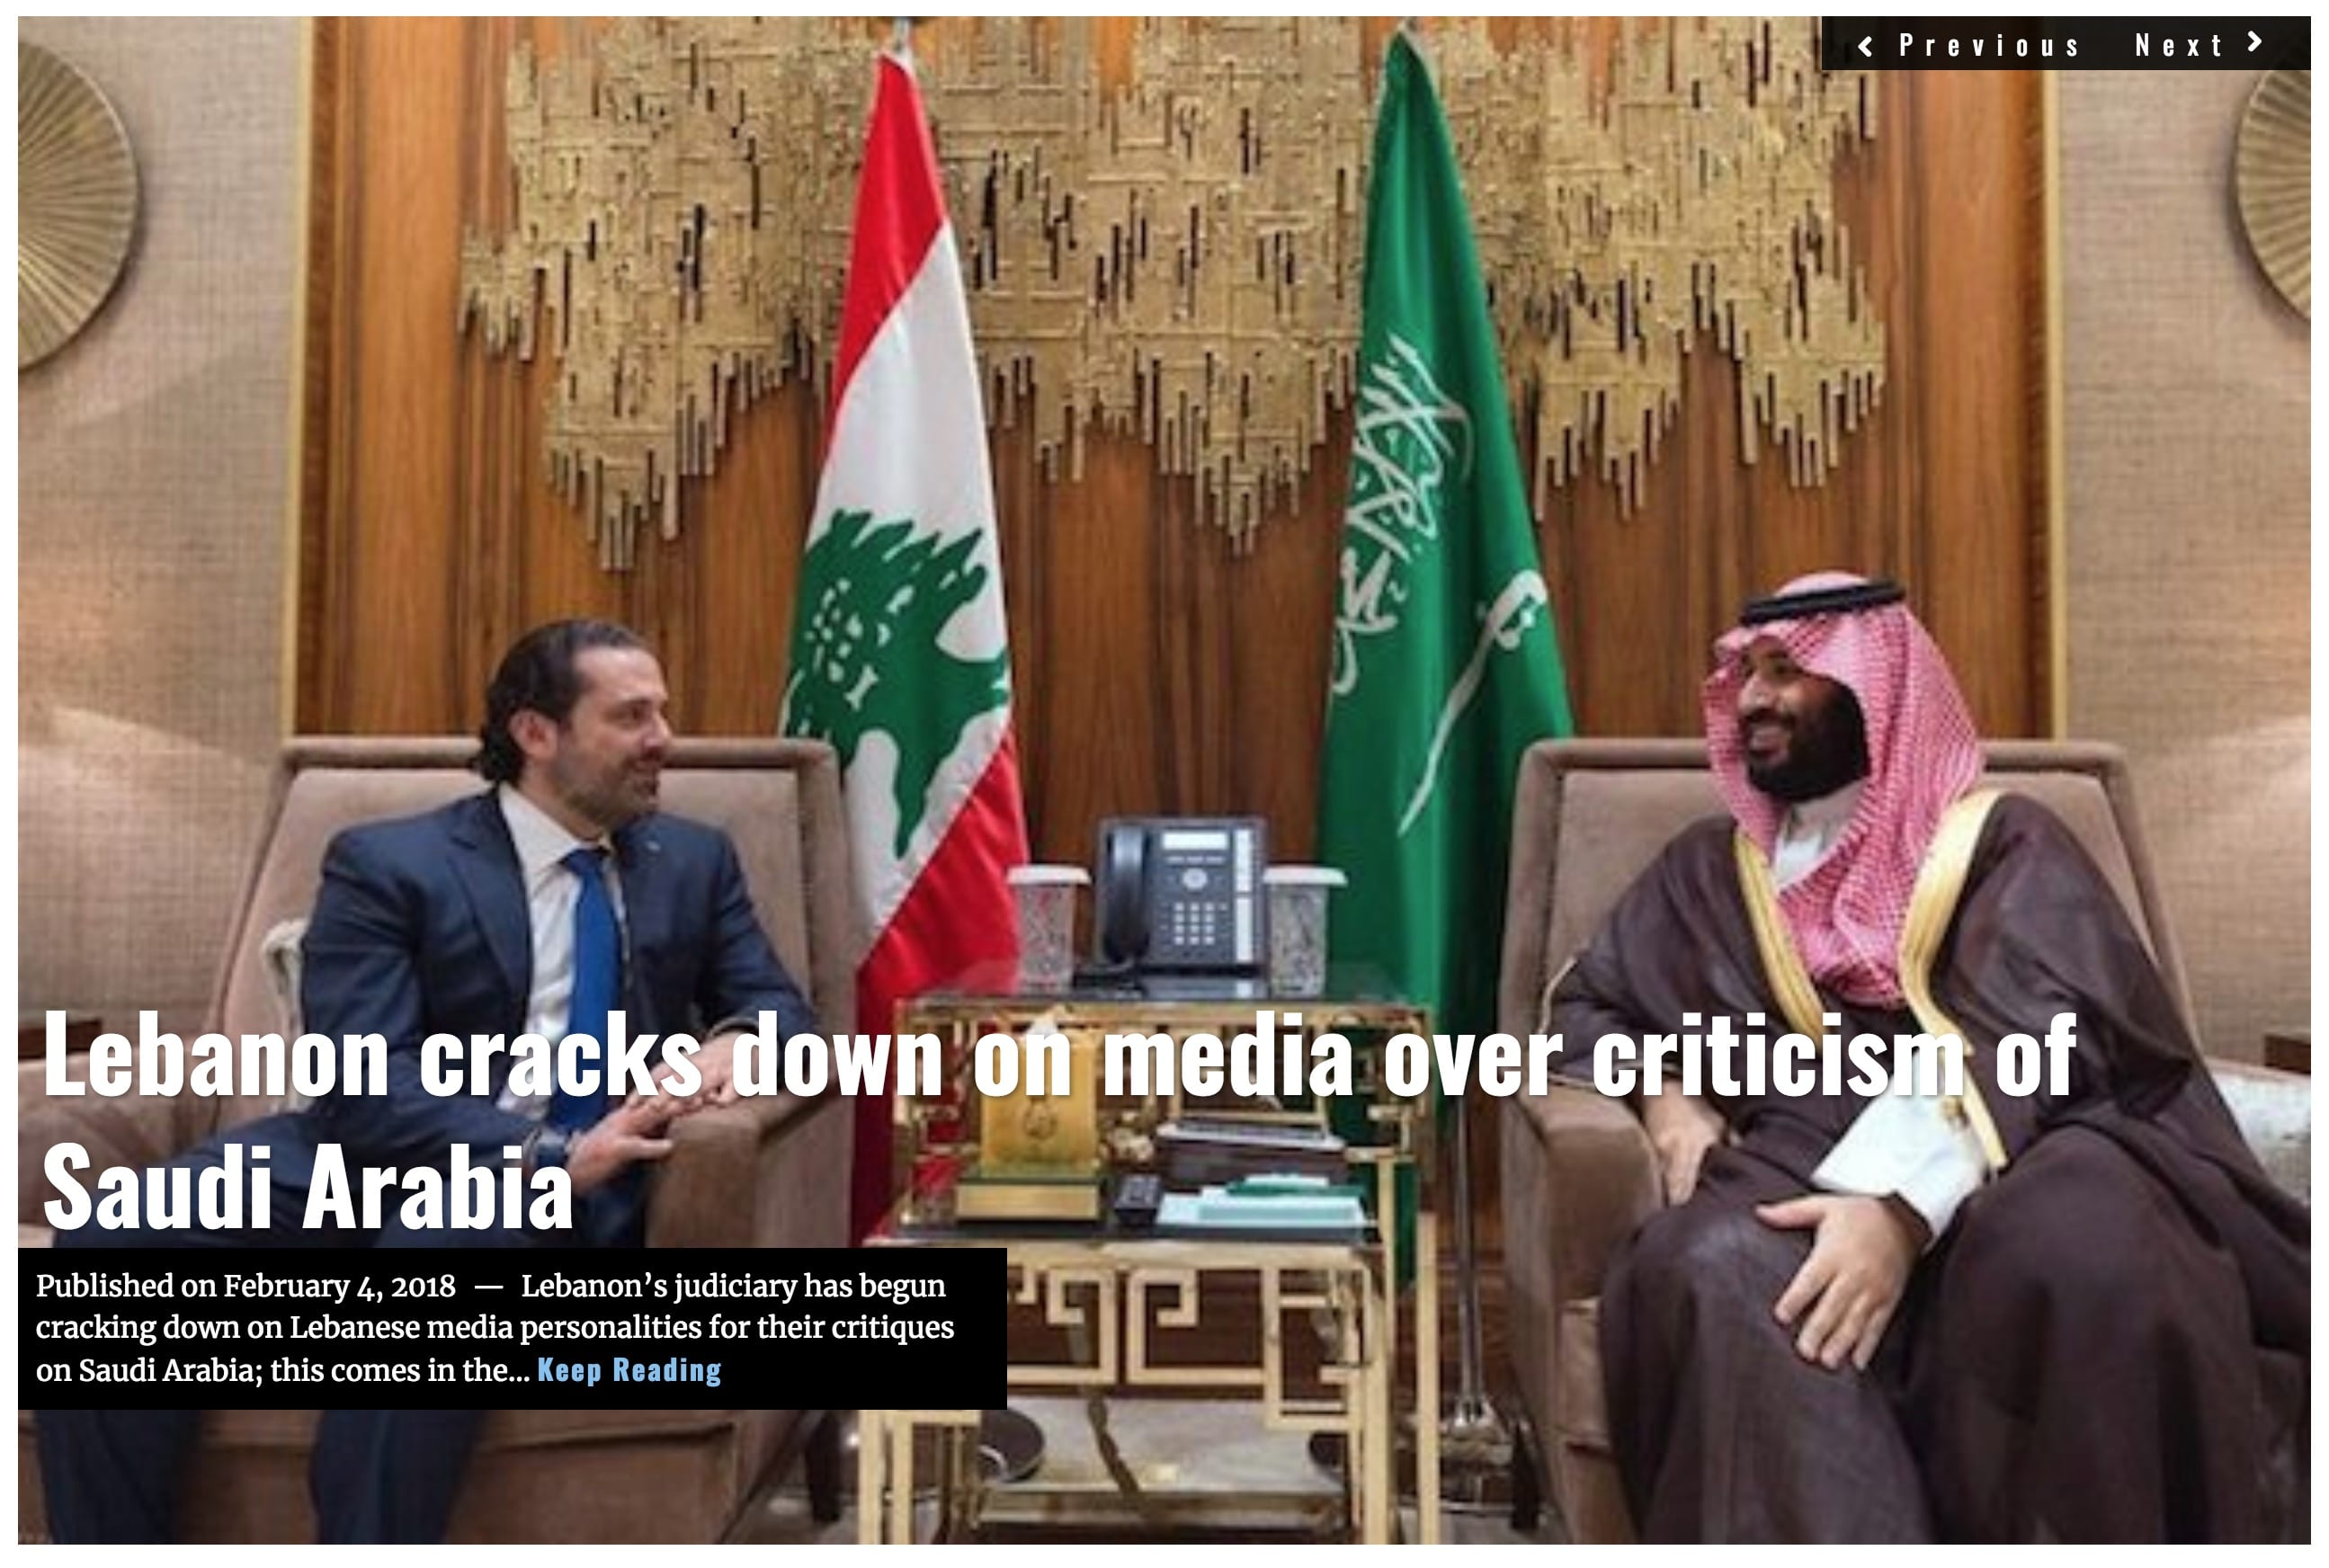 Image Lima Charlie News Headline Lebanon free speech FEB 4 2018